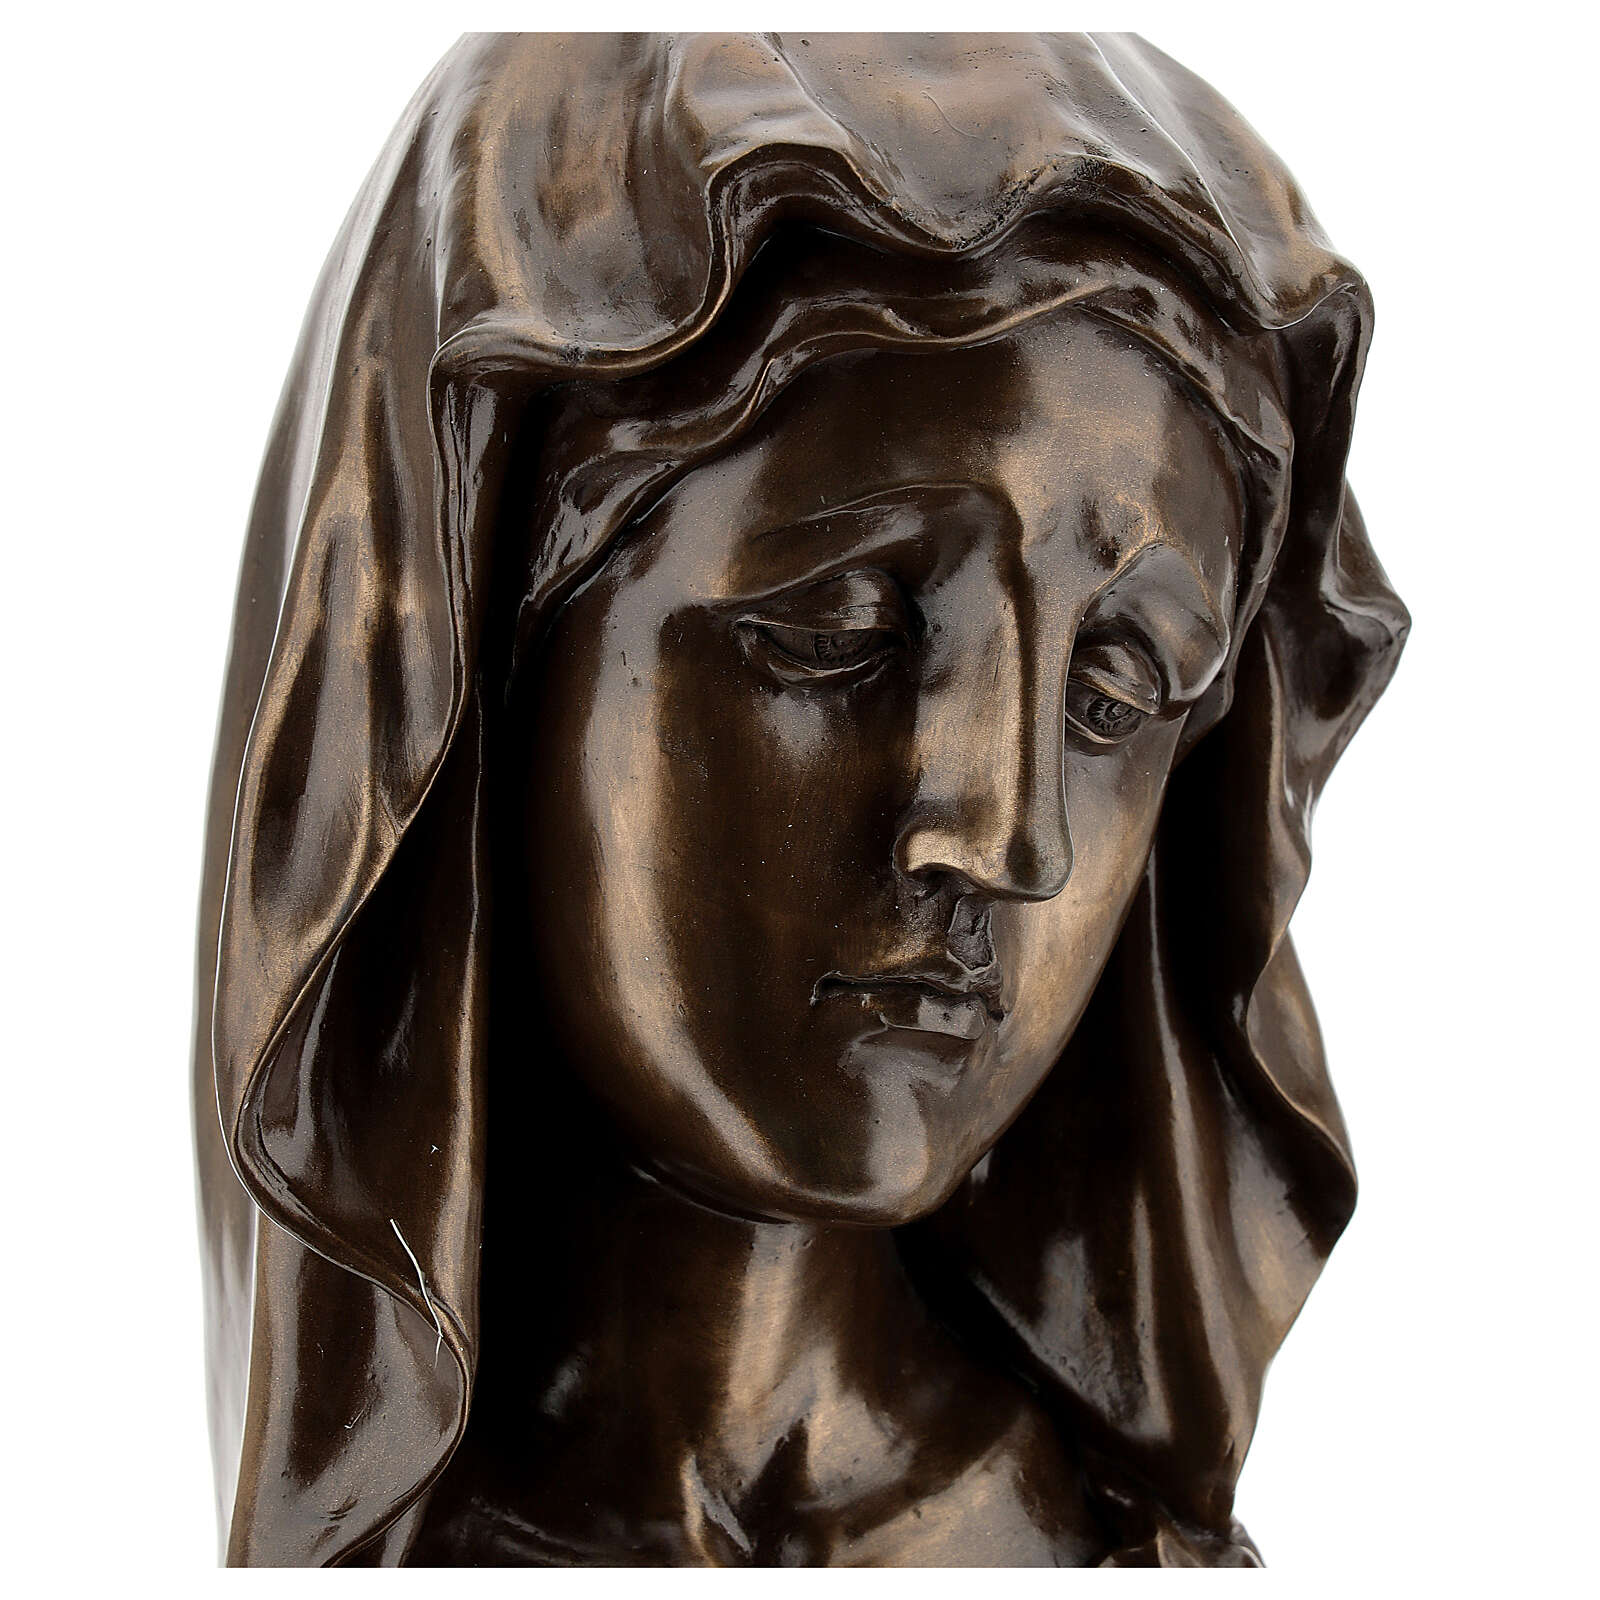 Face of the Virgin Mary in resin with bronze effect 18x11.5 cm cm 4